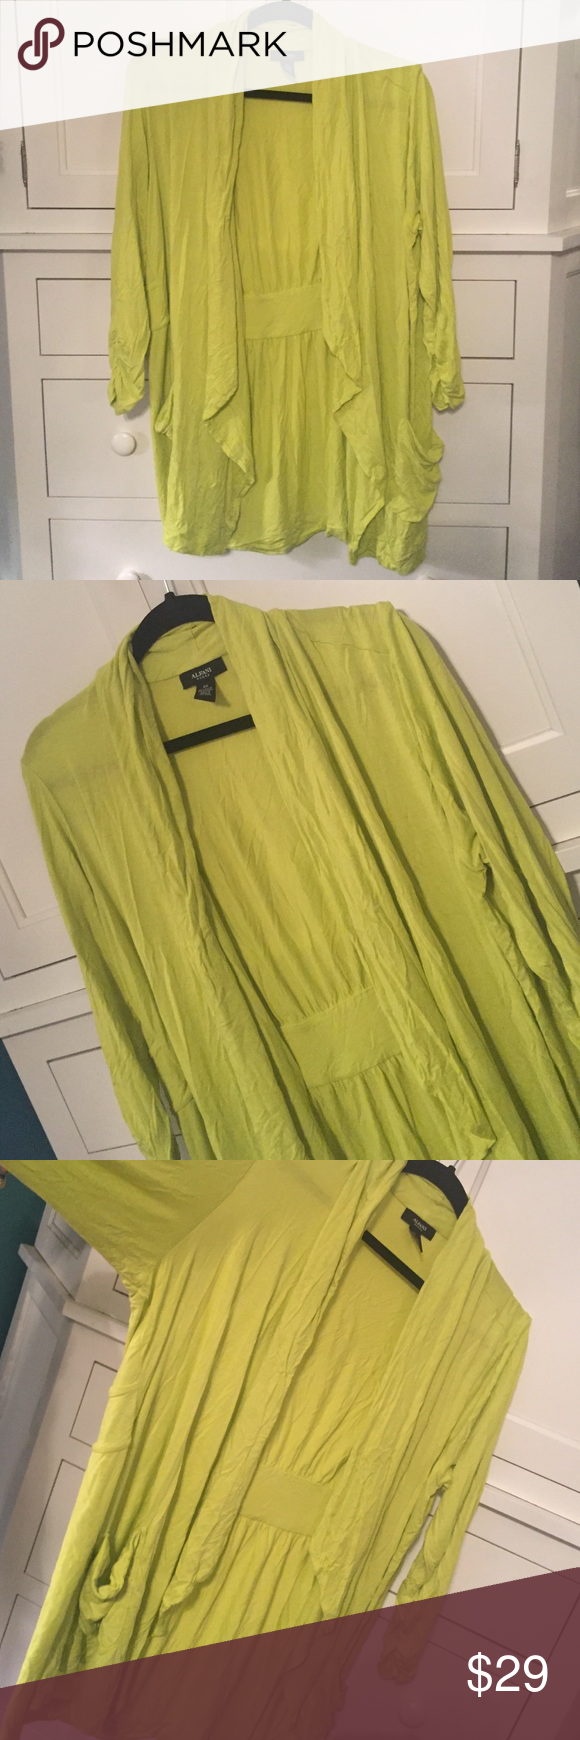 Alfani Neon Cardigan Worn once, great condition, open, drapey front Alfani Sweaters Cardigans